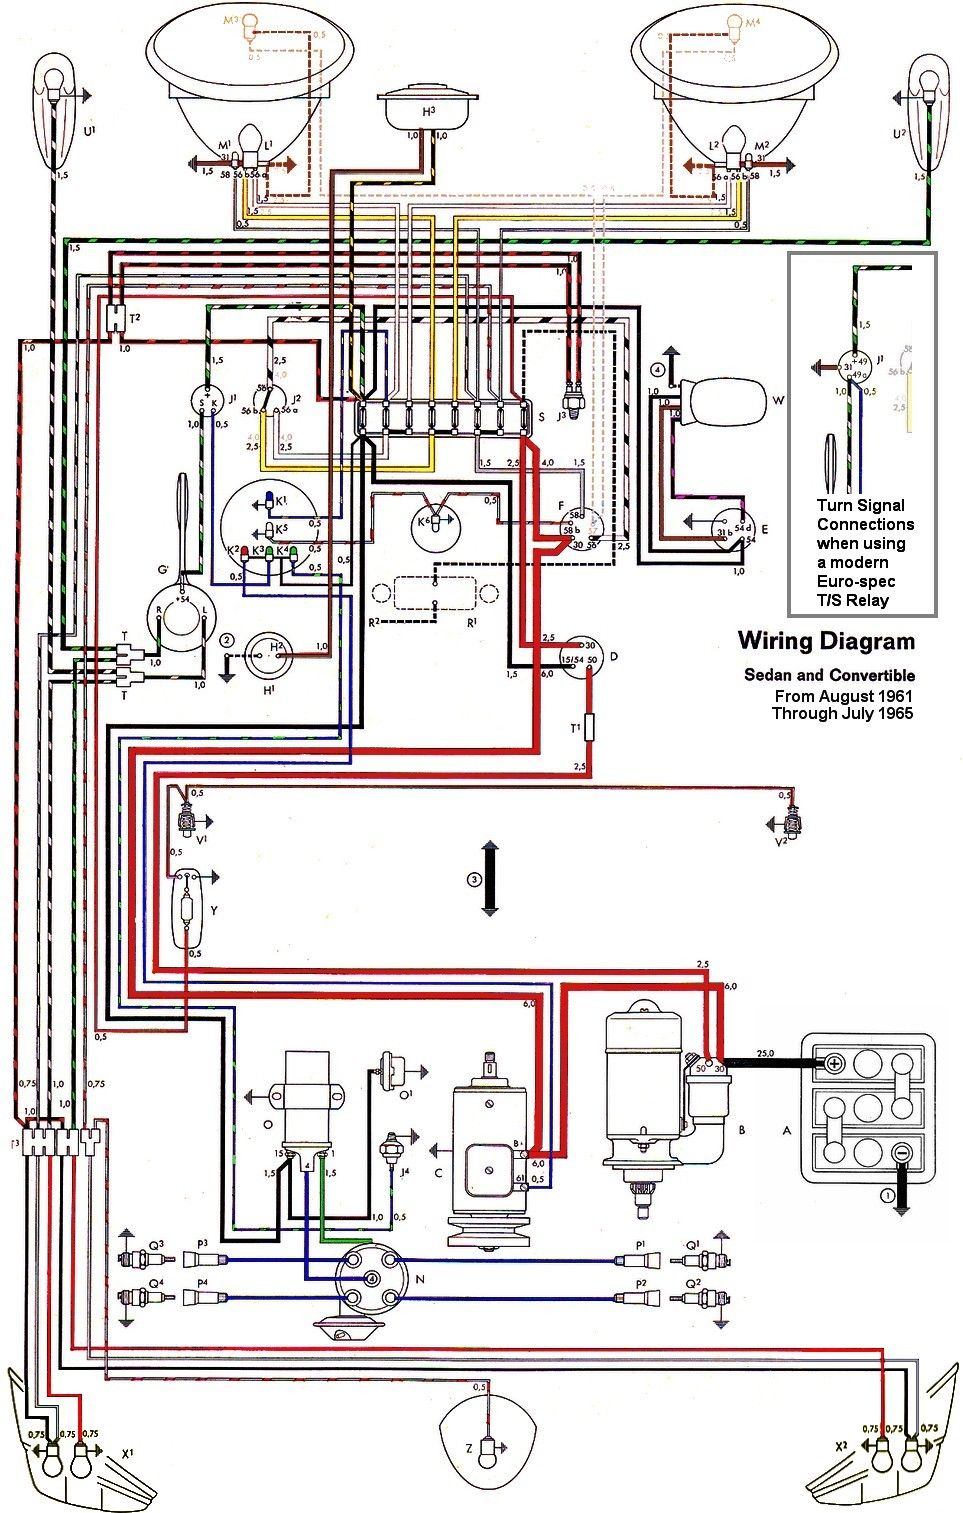 2235472c26e9b61112a110100d6ddea3 wiring diagram in color 1964 vw bug, beetle, convertible the vw beetle wiring harness routing at mifinder.co